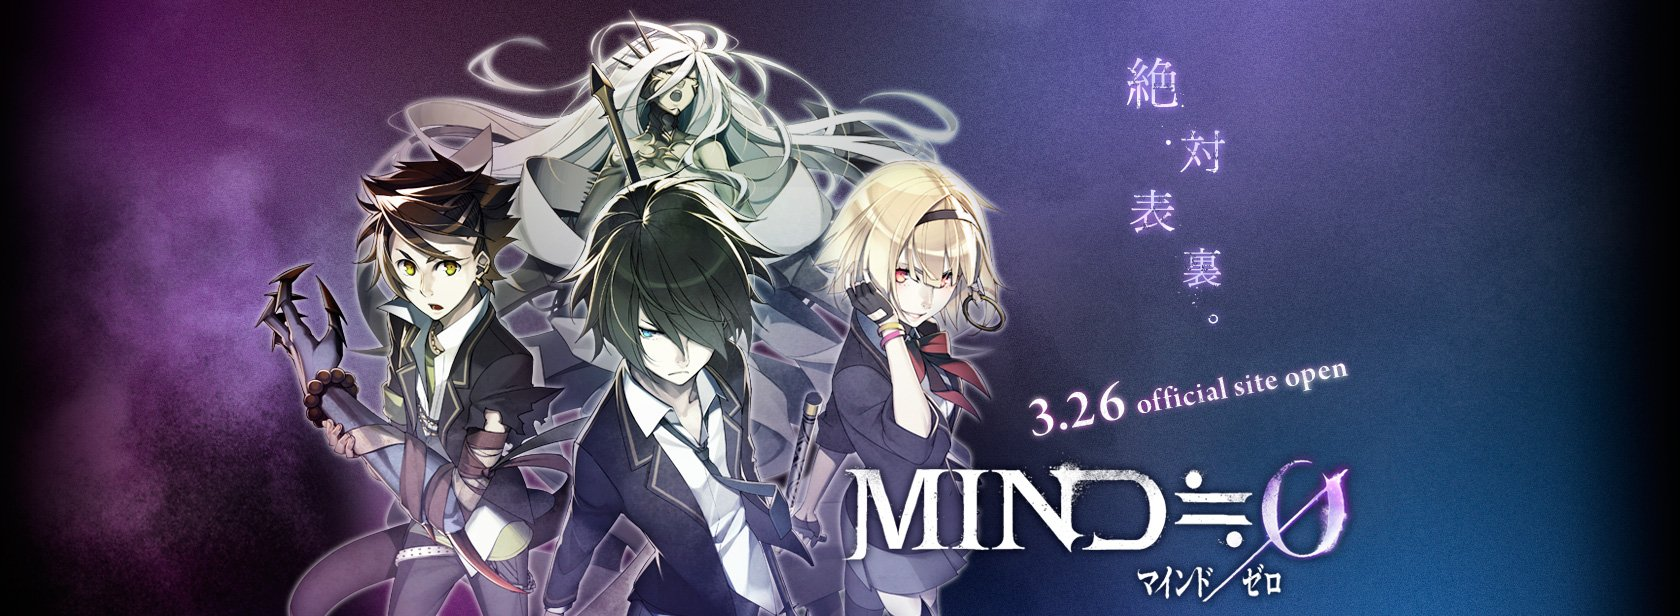 Acquire (orgarhythm, SUMIONI, Shinobido2) анонсировала MIND≒0 ... для PS VITA естественно!. - Изображение 1